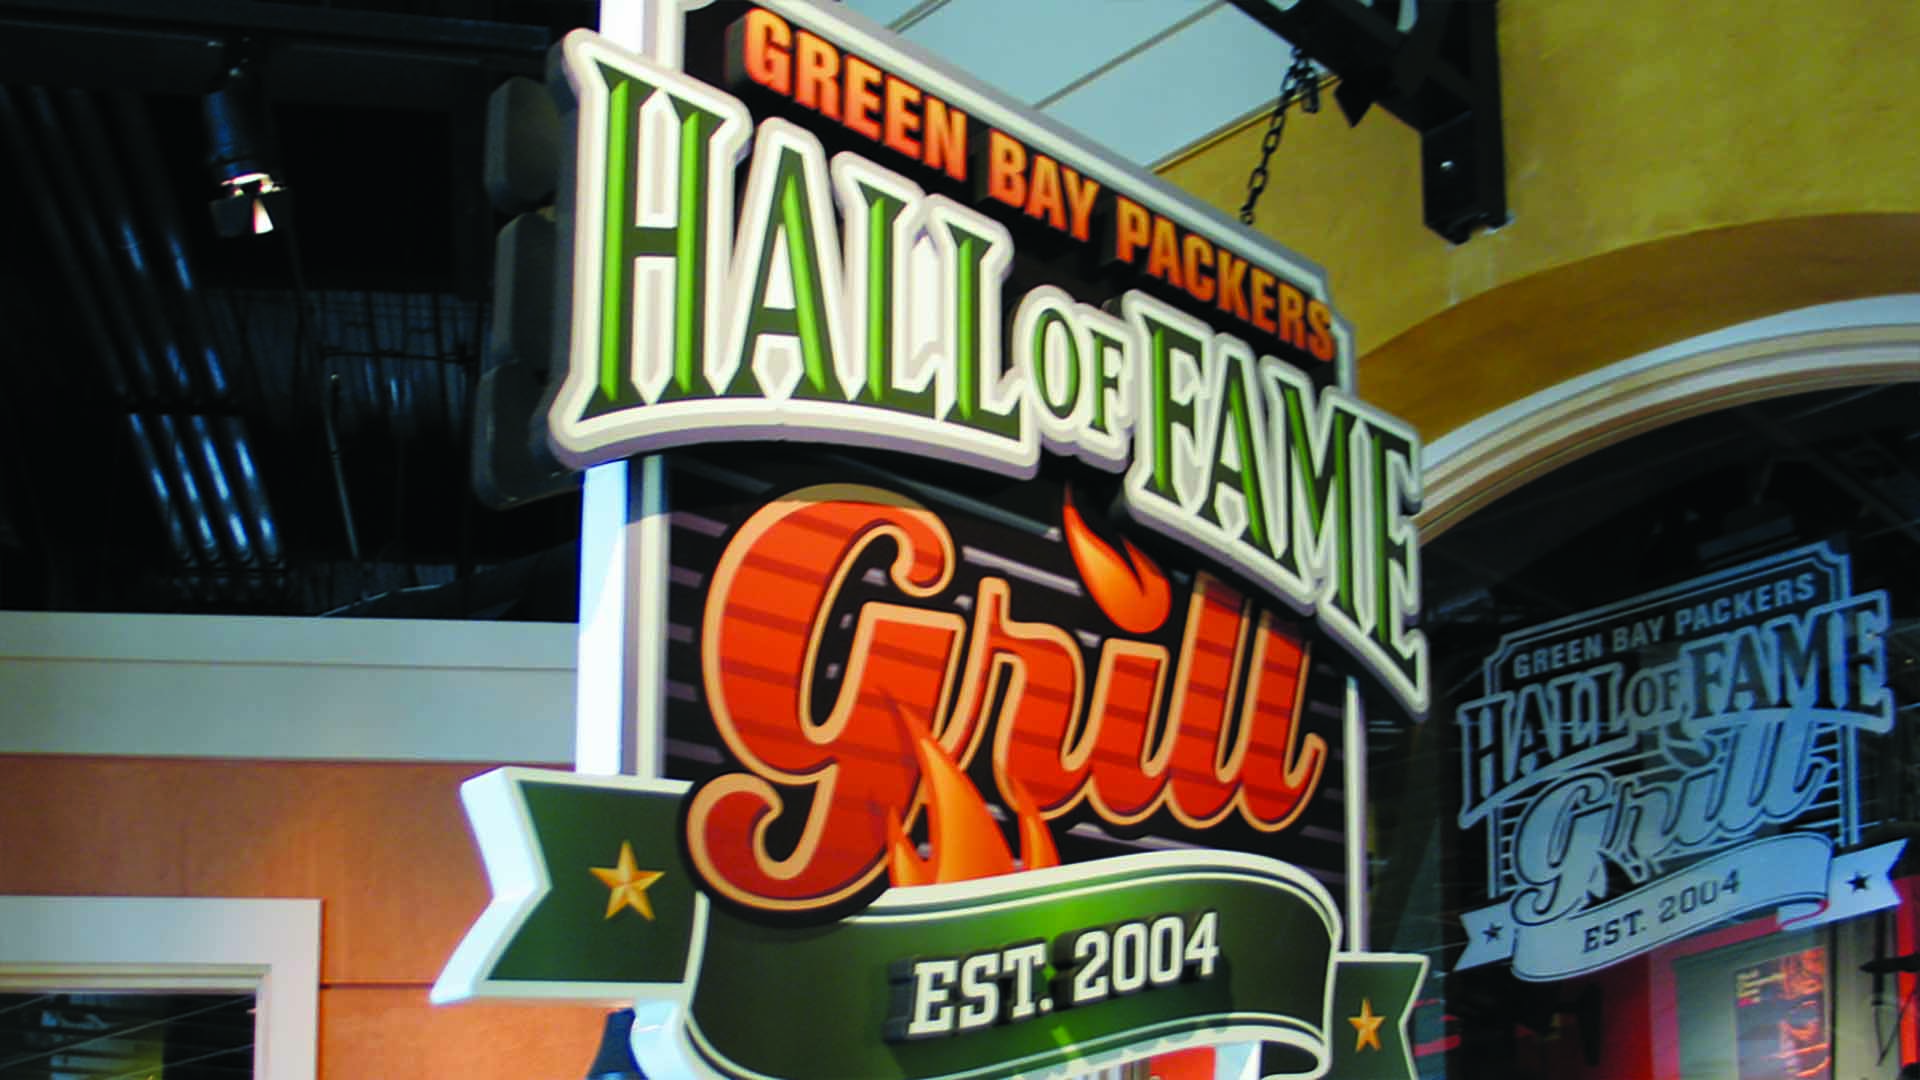 Hall of Fame Grill dimensional sign